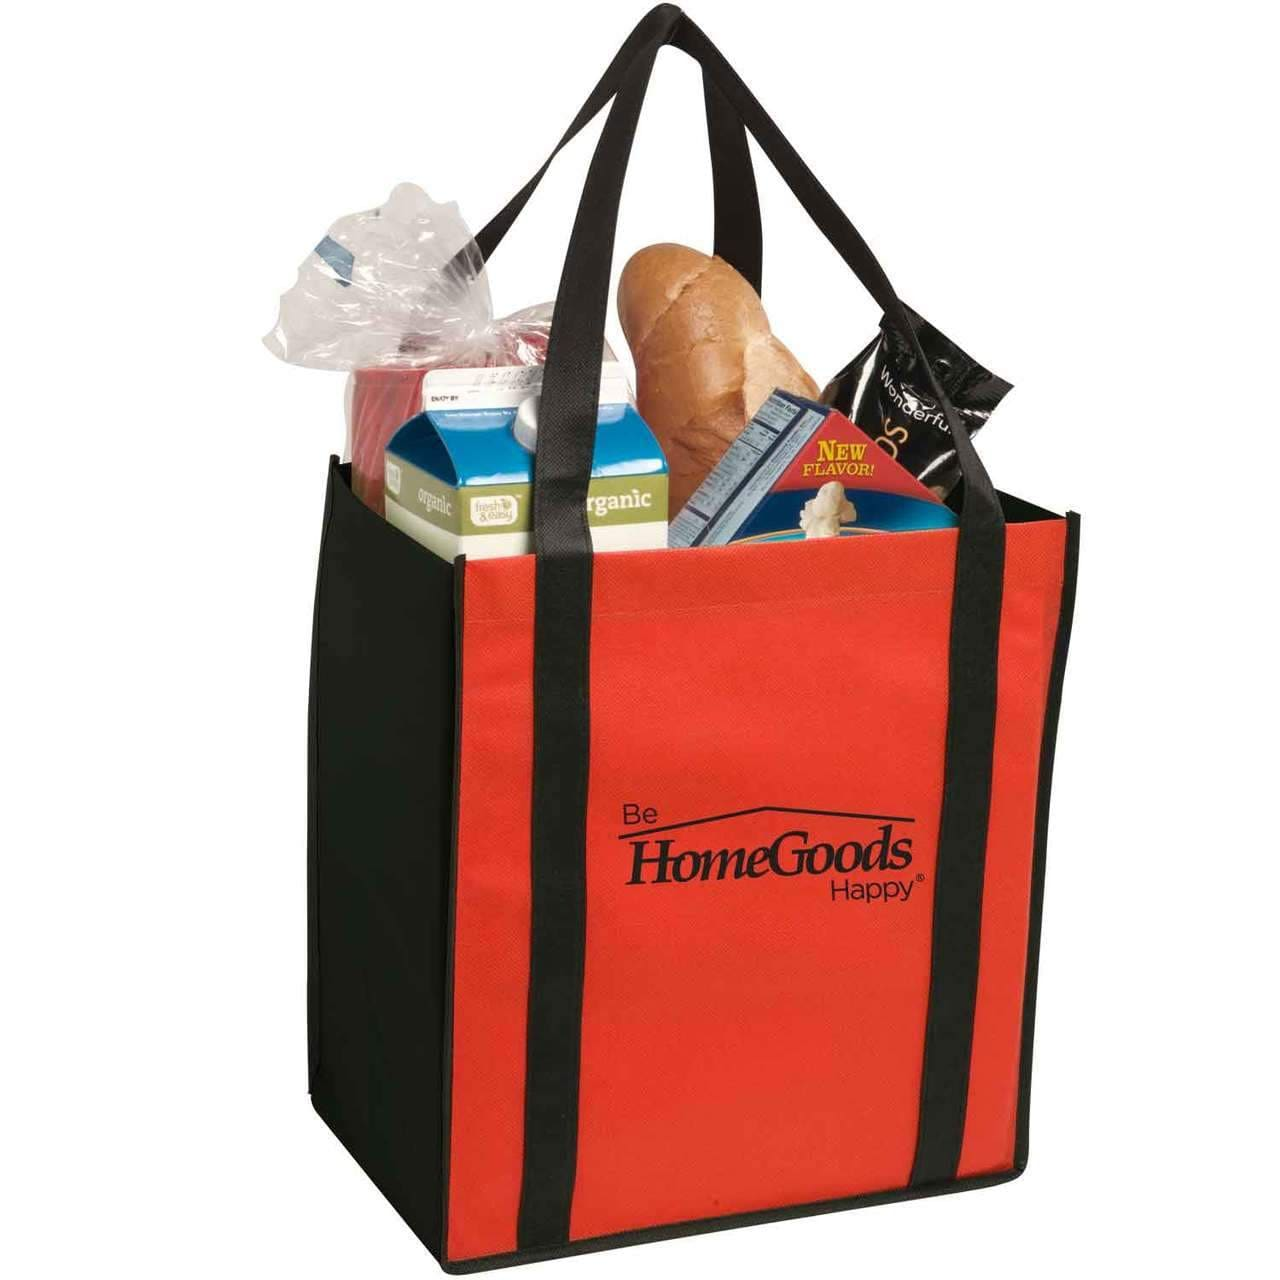 Non-Woven Two-Tone Grocery Tote - Red:9519.preview.jpg